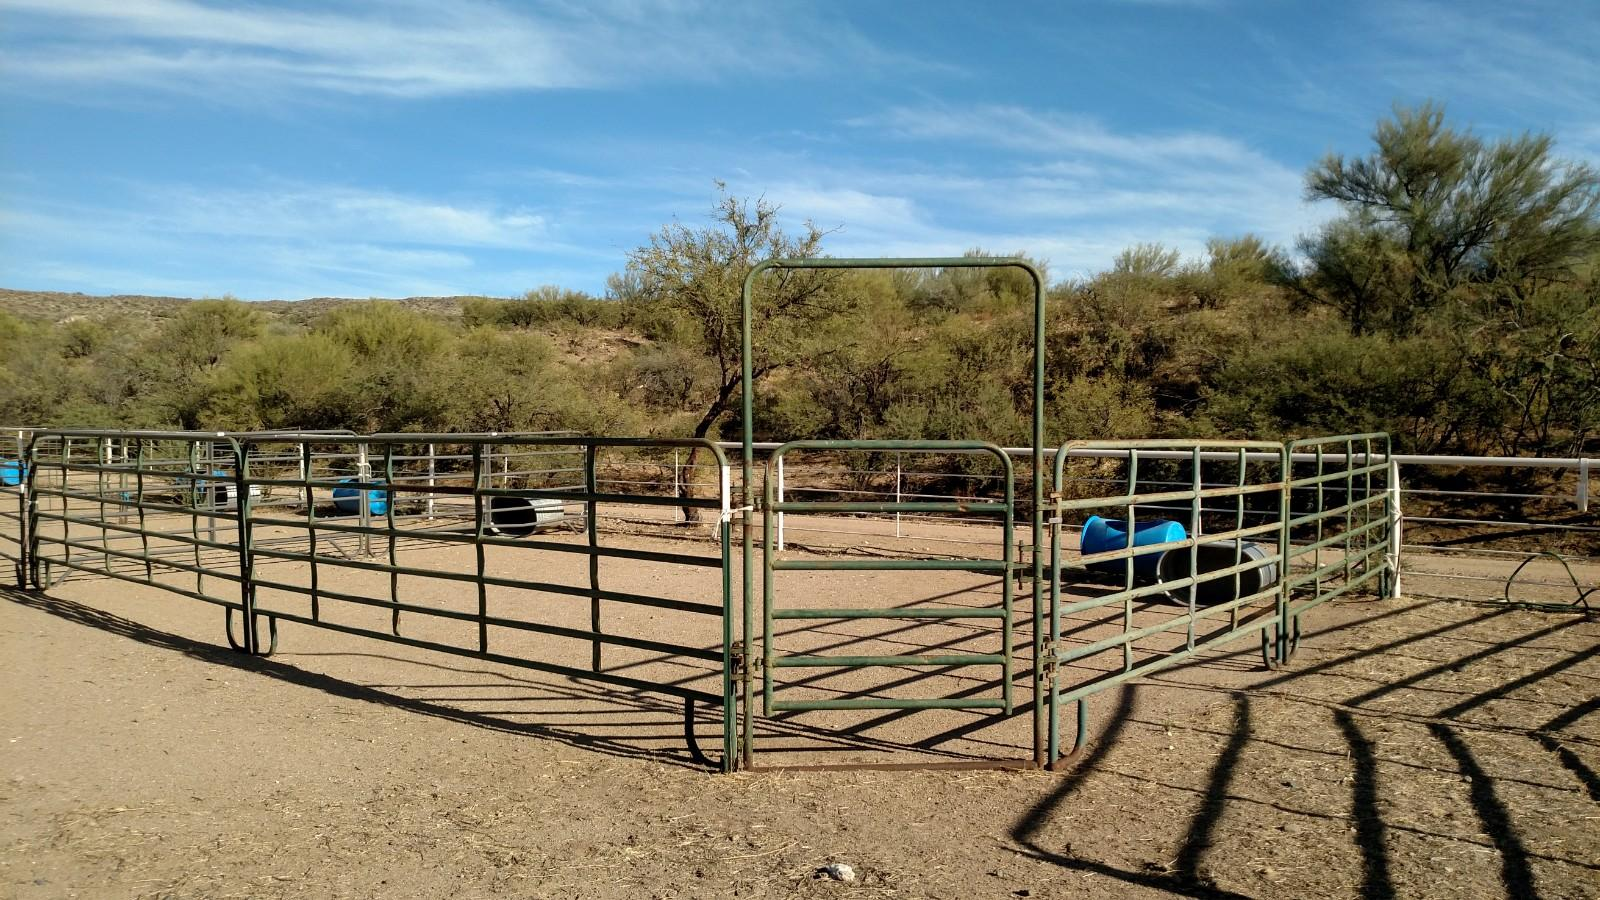 Fence Line Pen. Nice and clean. No leftover food and the water bucket dumped over.